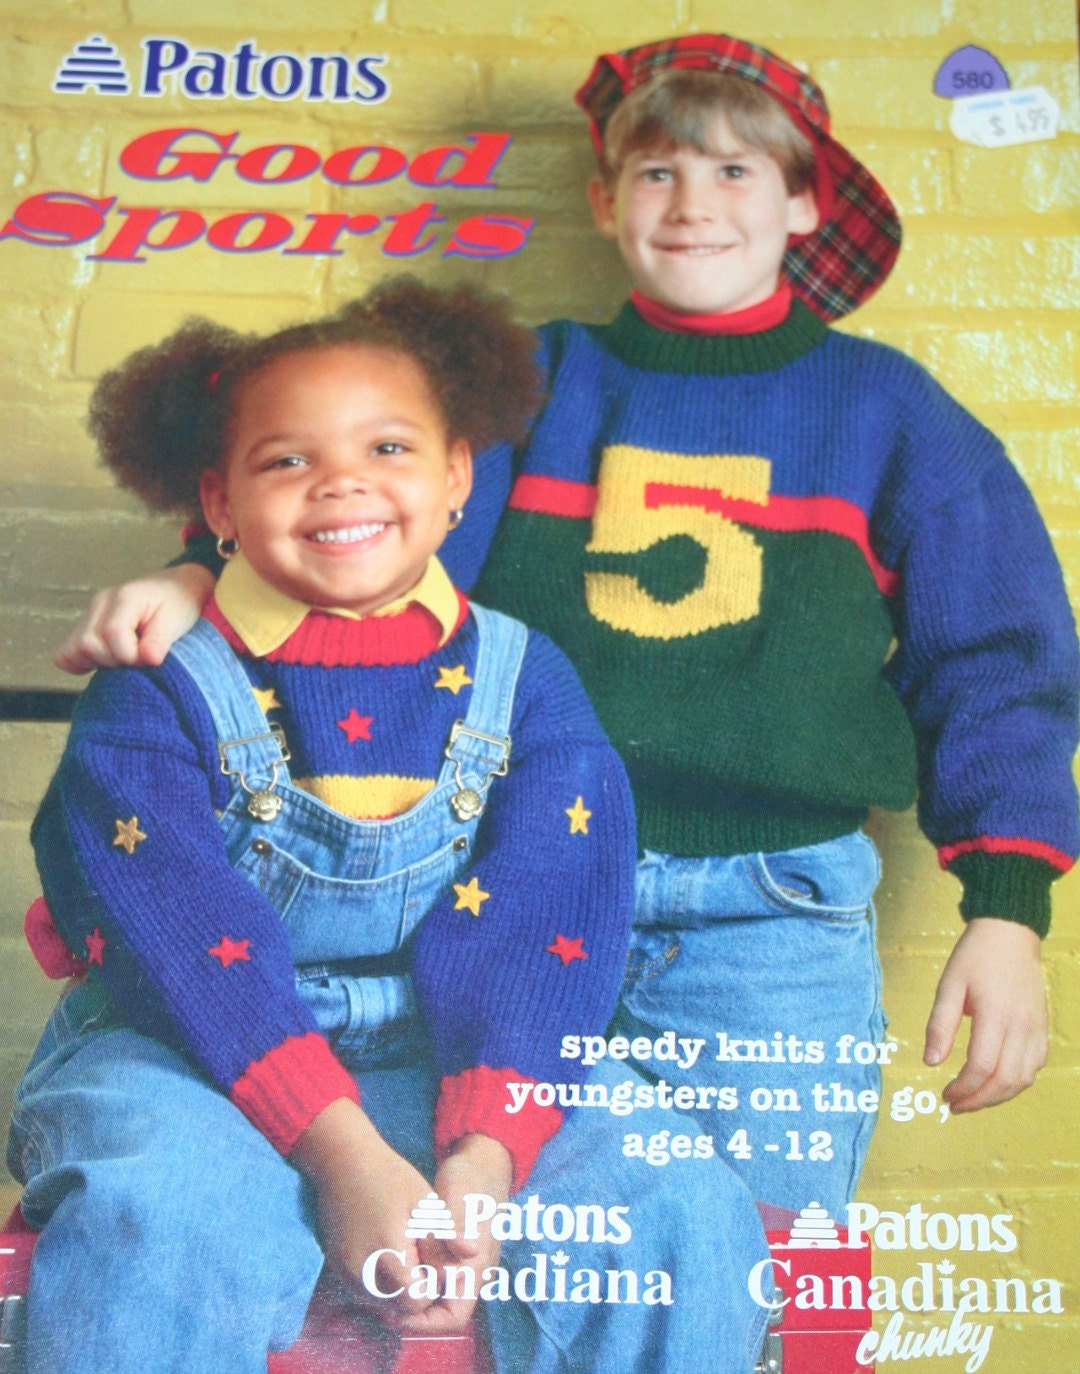 Sweater Knitting Patterns Kids Good Sports Beehive Patons 580 ...